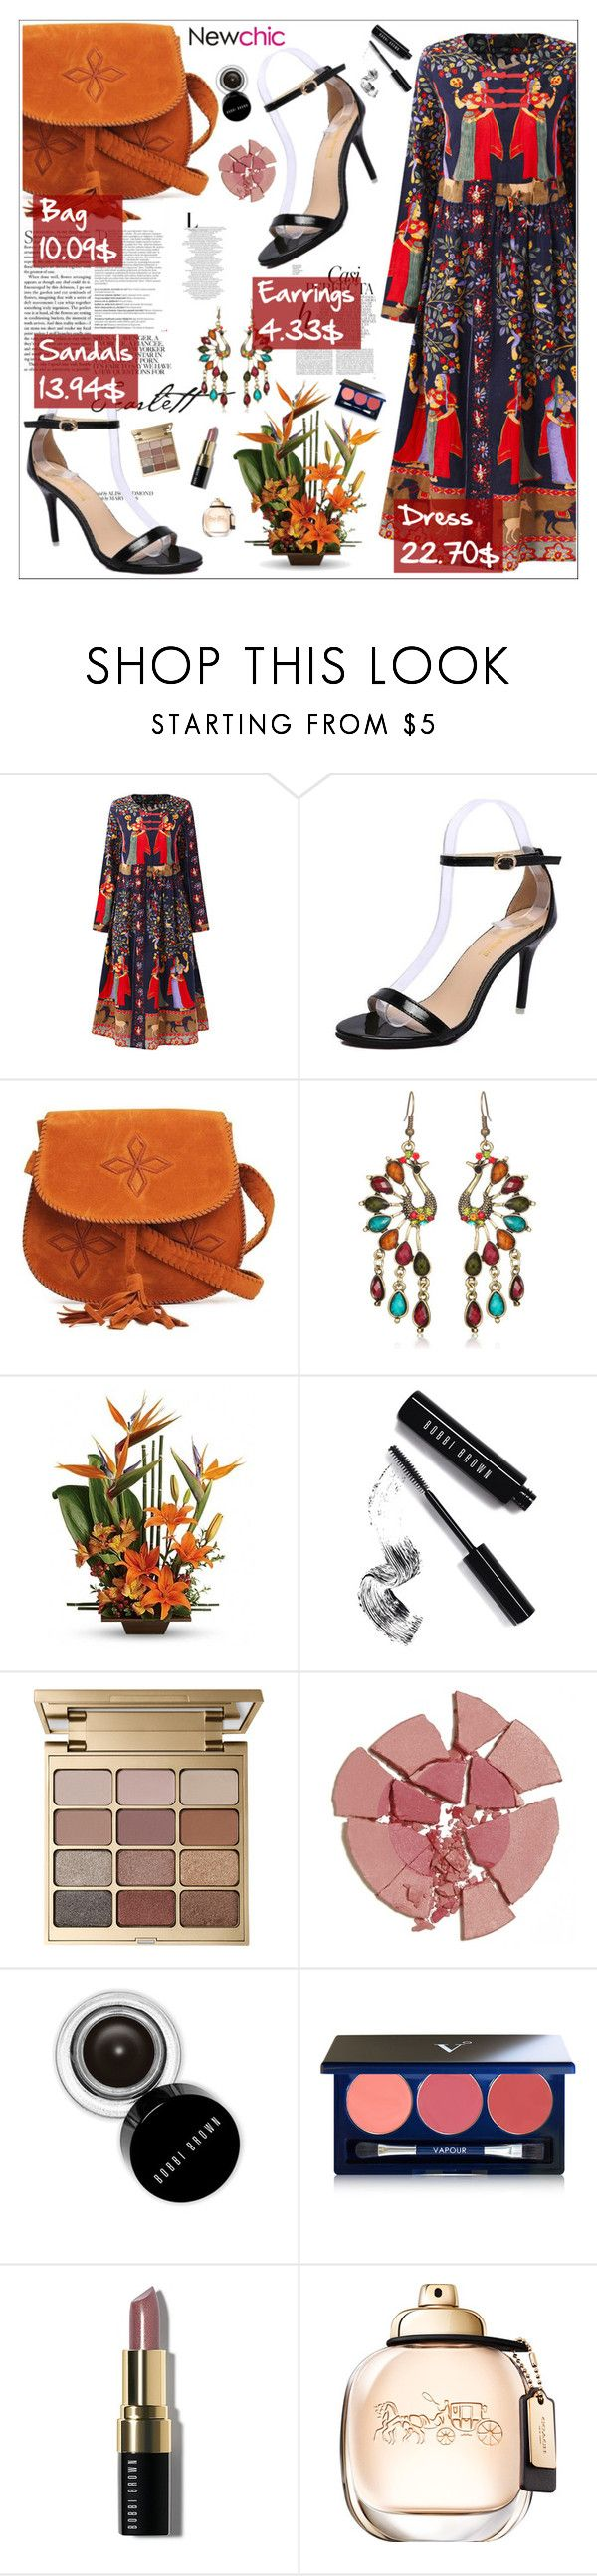 """""""Newchic 10"""" by amra-softic ❤ liked on Polyvore featuring Balmain, Whiteley, Bobbi Brown Cosmetics, Stila, Charlotte Tilbury, Vapour and plus size dresses"""